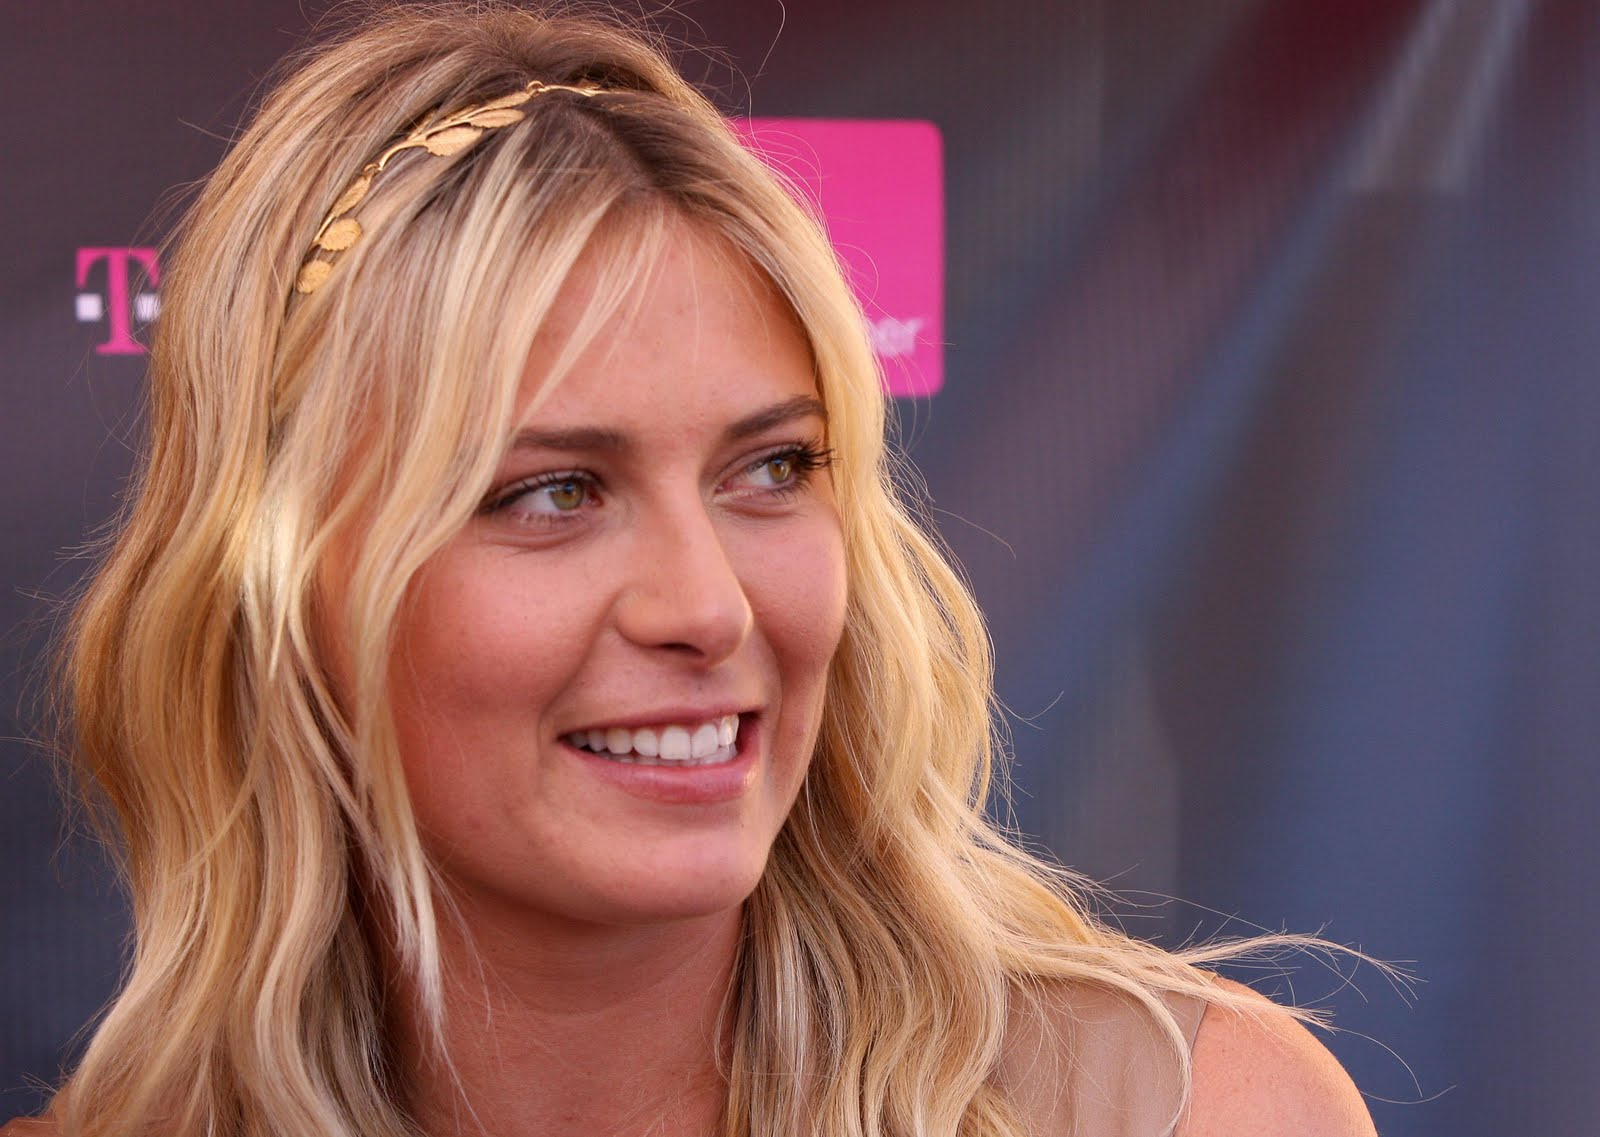 http://1.bp.blogspot.com/_b75UL5G9BPA/SwNnGILTKPI/AAAAAAAAHxE/IEC3C2rS8ZM/s1600/78706_ie_-_Maria_Sharapova_at_the_T-Mobile_and_Sony_Ericsson_Maria_Sharapova_Look-a-like_contest_at_the_new_T-Mobile_store_in_Canoga_Park_-_Oct__31_2009_1742_122_214lo-799825.jpg